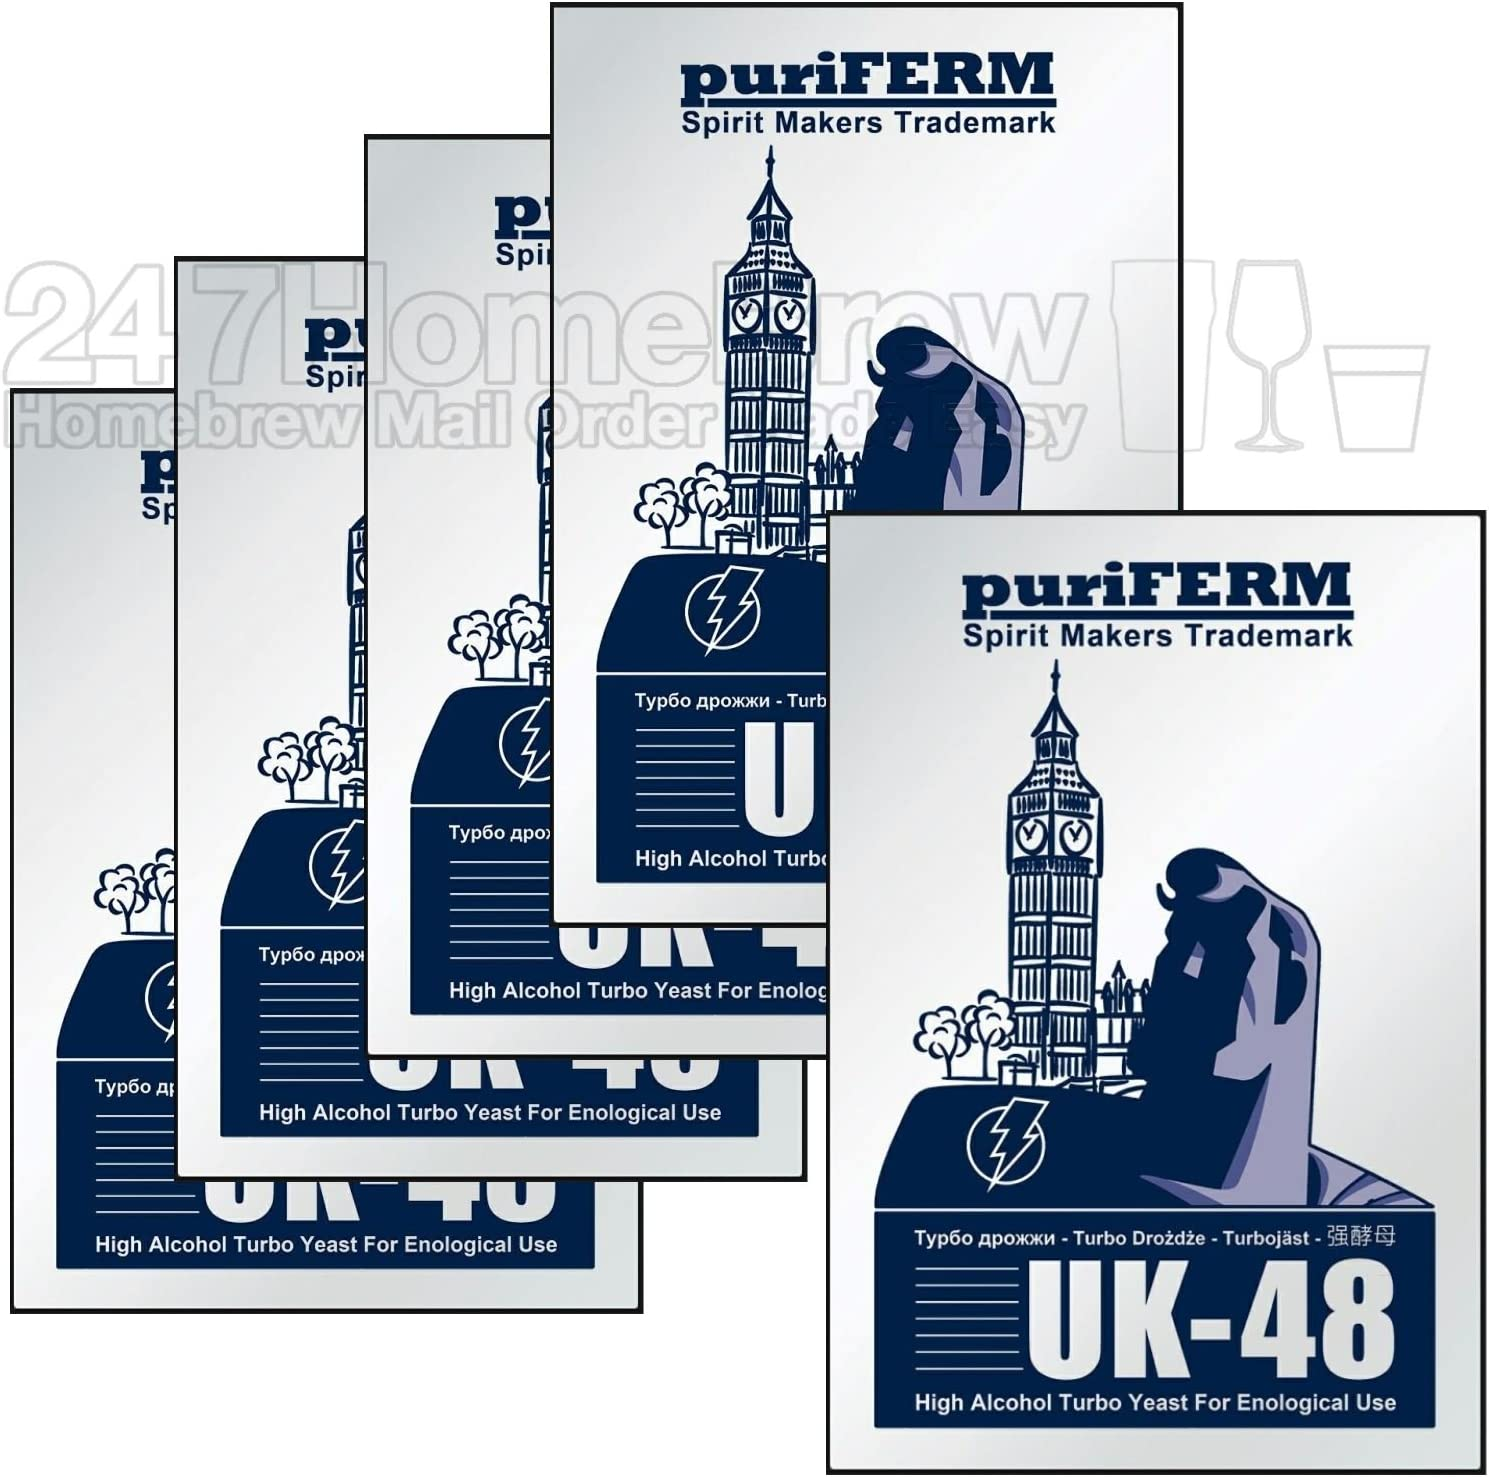 5X Puriferm UK-48 Turbo Yeast 48hr High Alcohol fermentaion